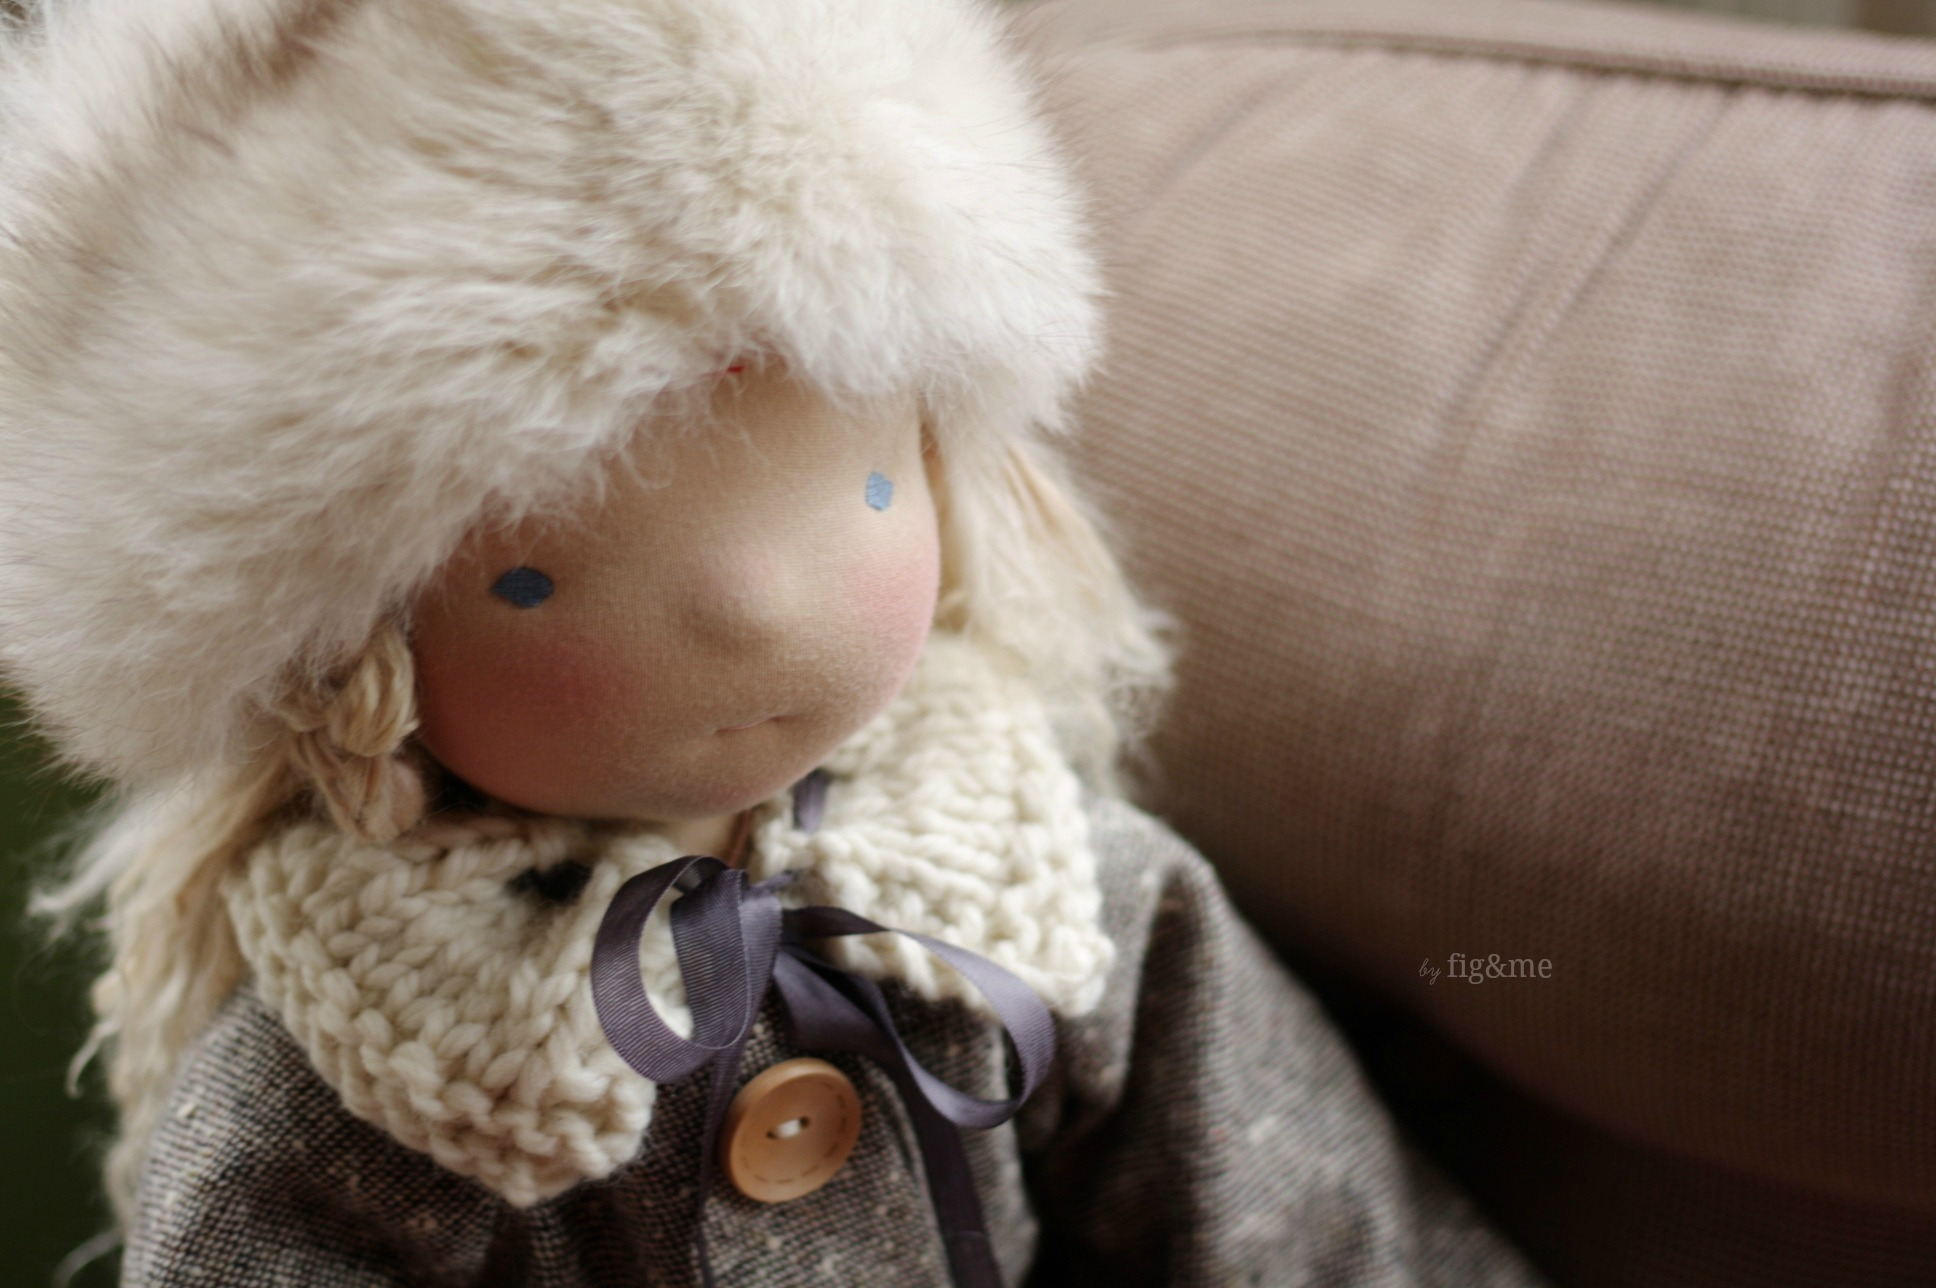 Beatrice in Winter regalia, by Fig&me